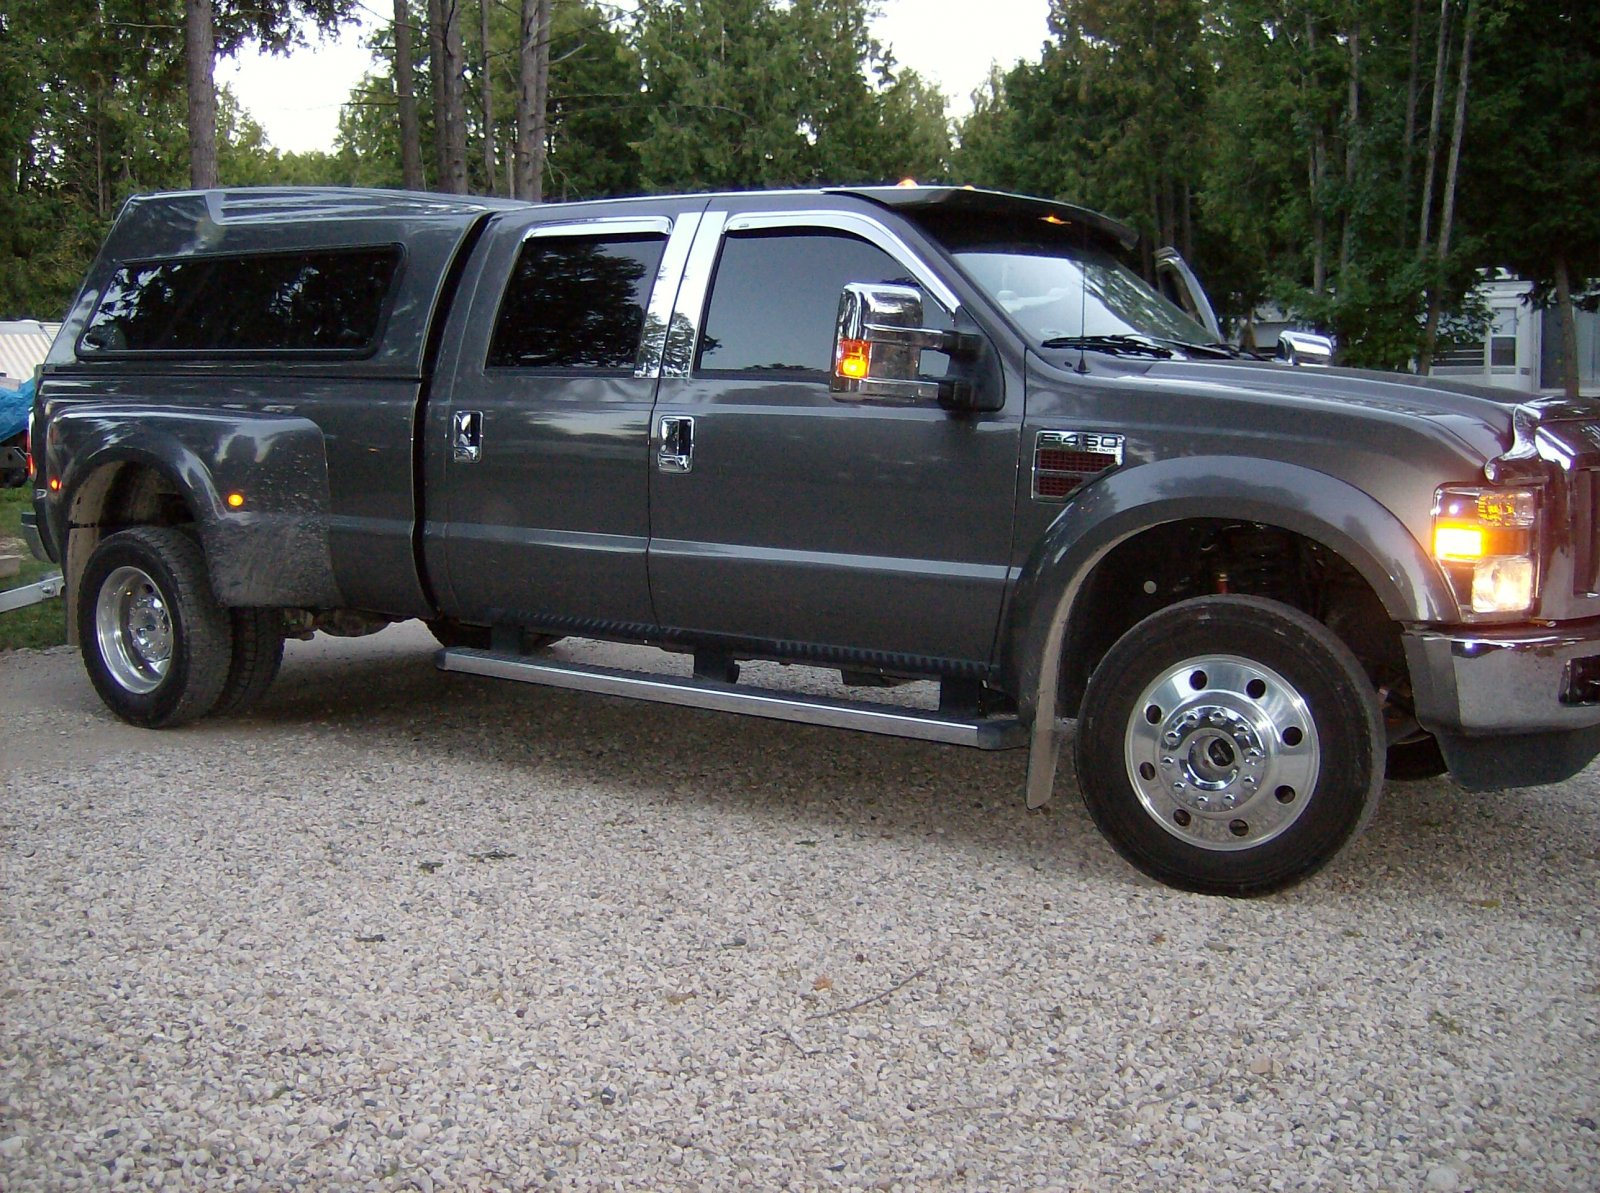 Click image for larger version  Name:My Tow Vehicle.jpg Views:118 Size:471.9 KB ID:119501